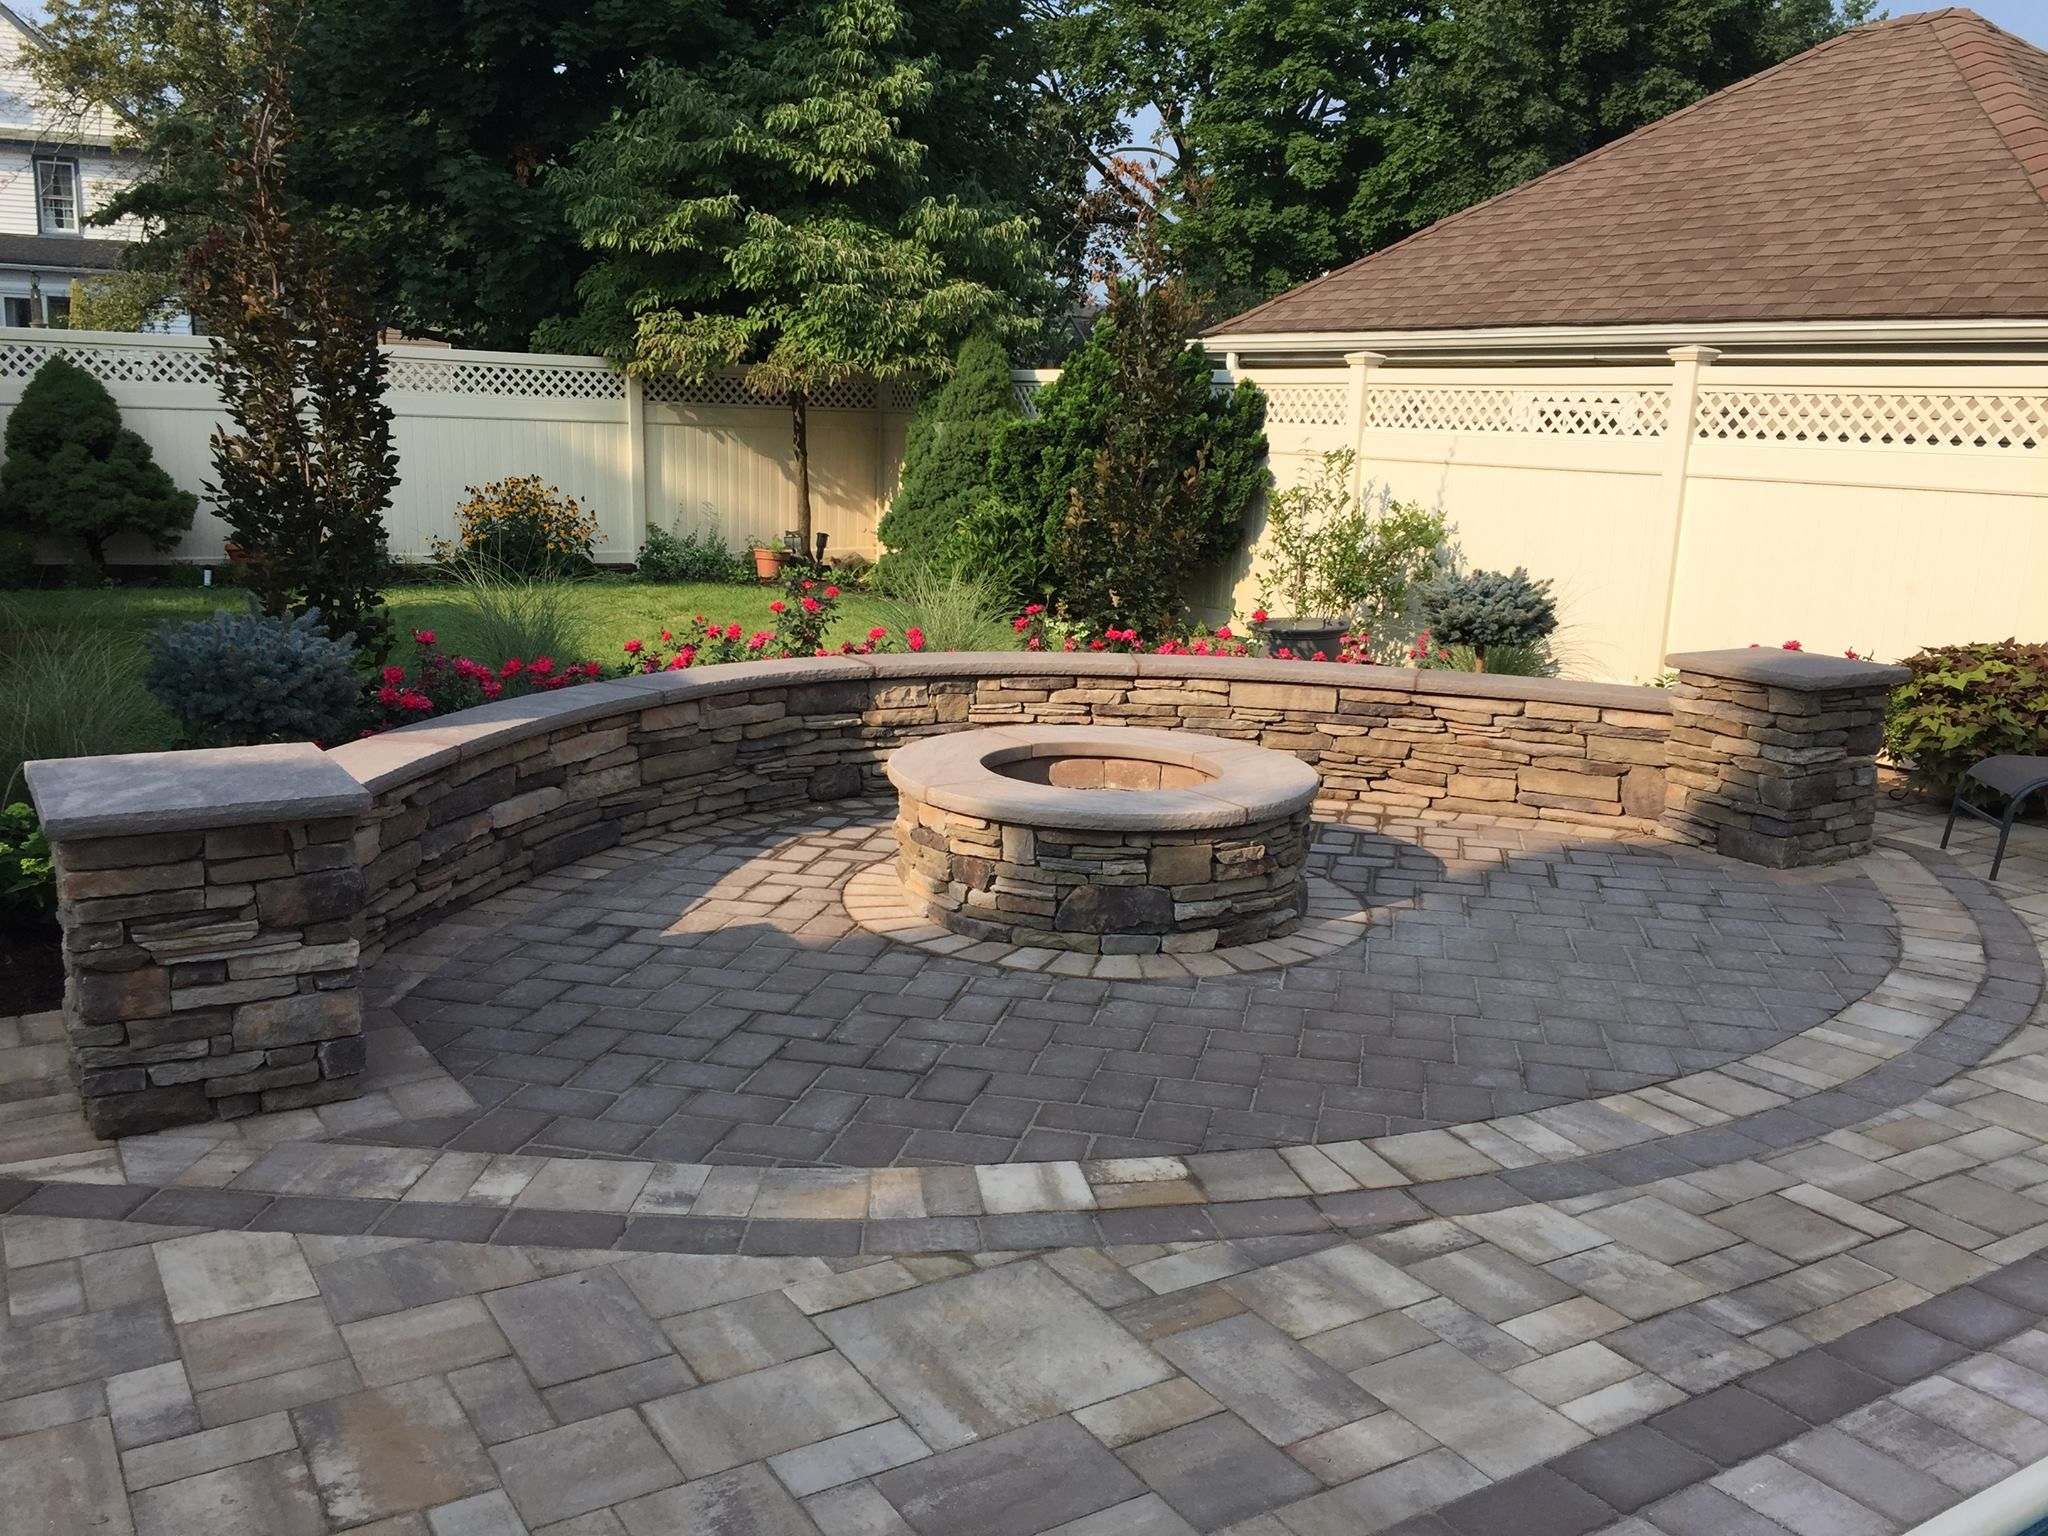 Paved Patio With Stone Veneer Sitting Wall Circular Fire Pit As Well As Grey Herringbone Pavers All Desi Fire Pit Landscaping Garden Fire Pit Small Fire Pit